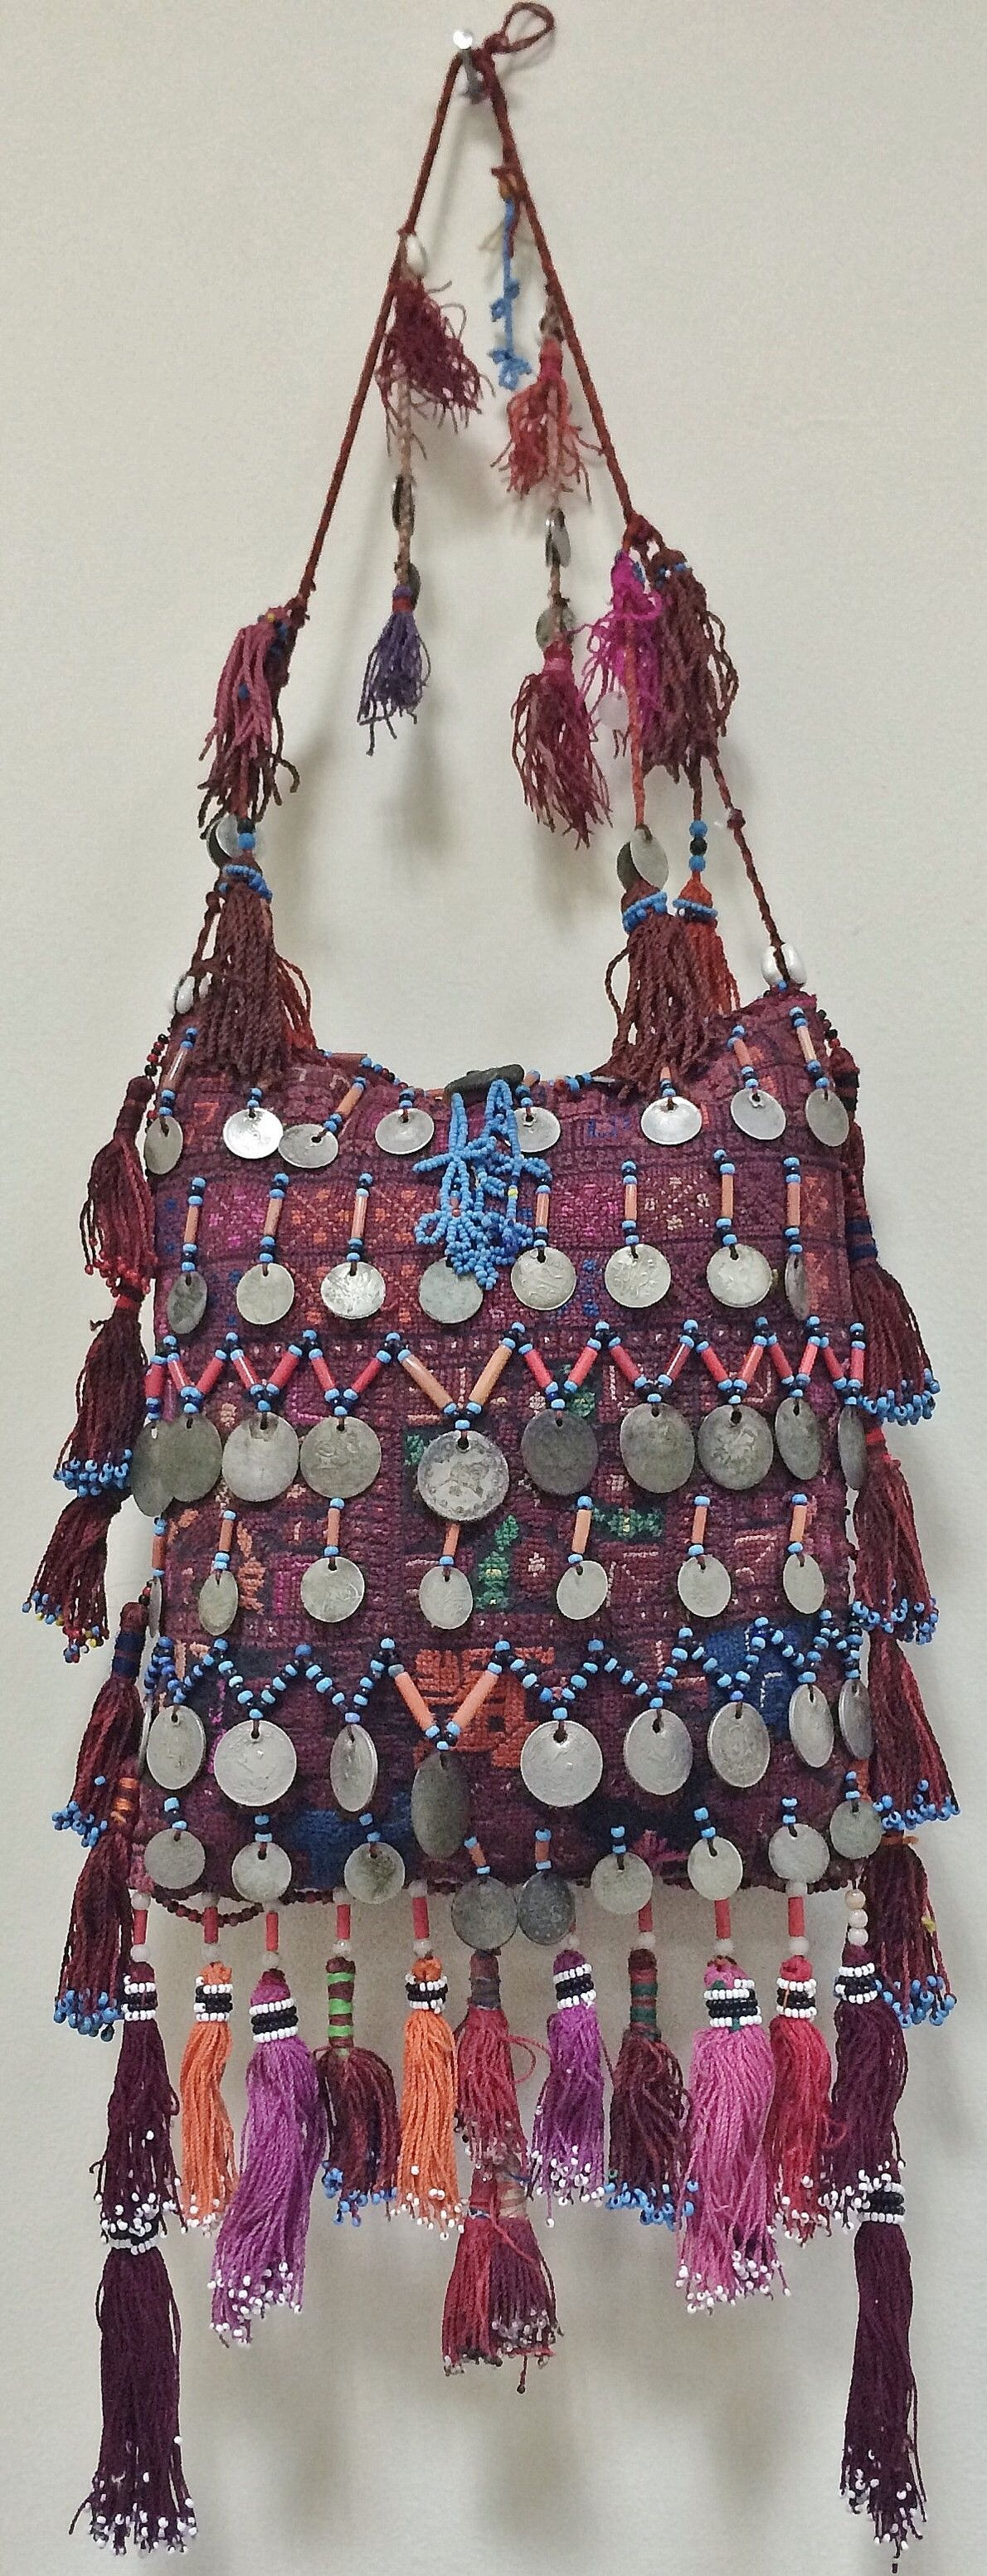 Large pouch with kohl container.  From Bersheeba (Palestine), 20th century.  Both sides are fully embroidered and adorned with coral- & glass beads, silk tassels, and antique coins (late-Ottoman and others).  (Source: Peter Hoesli).